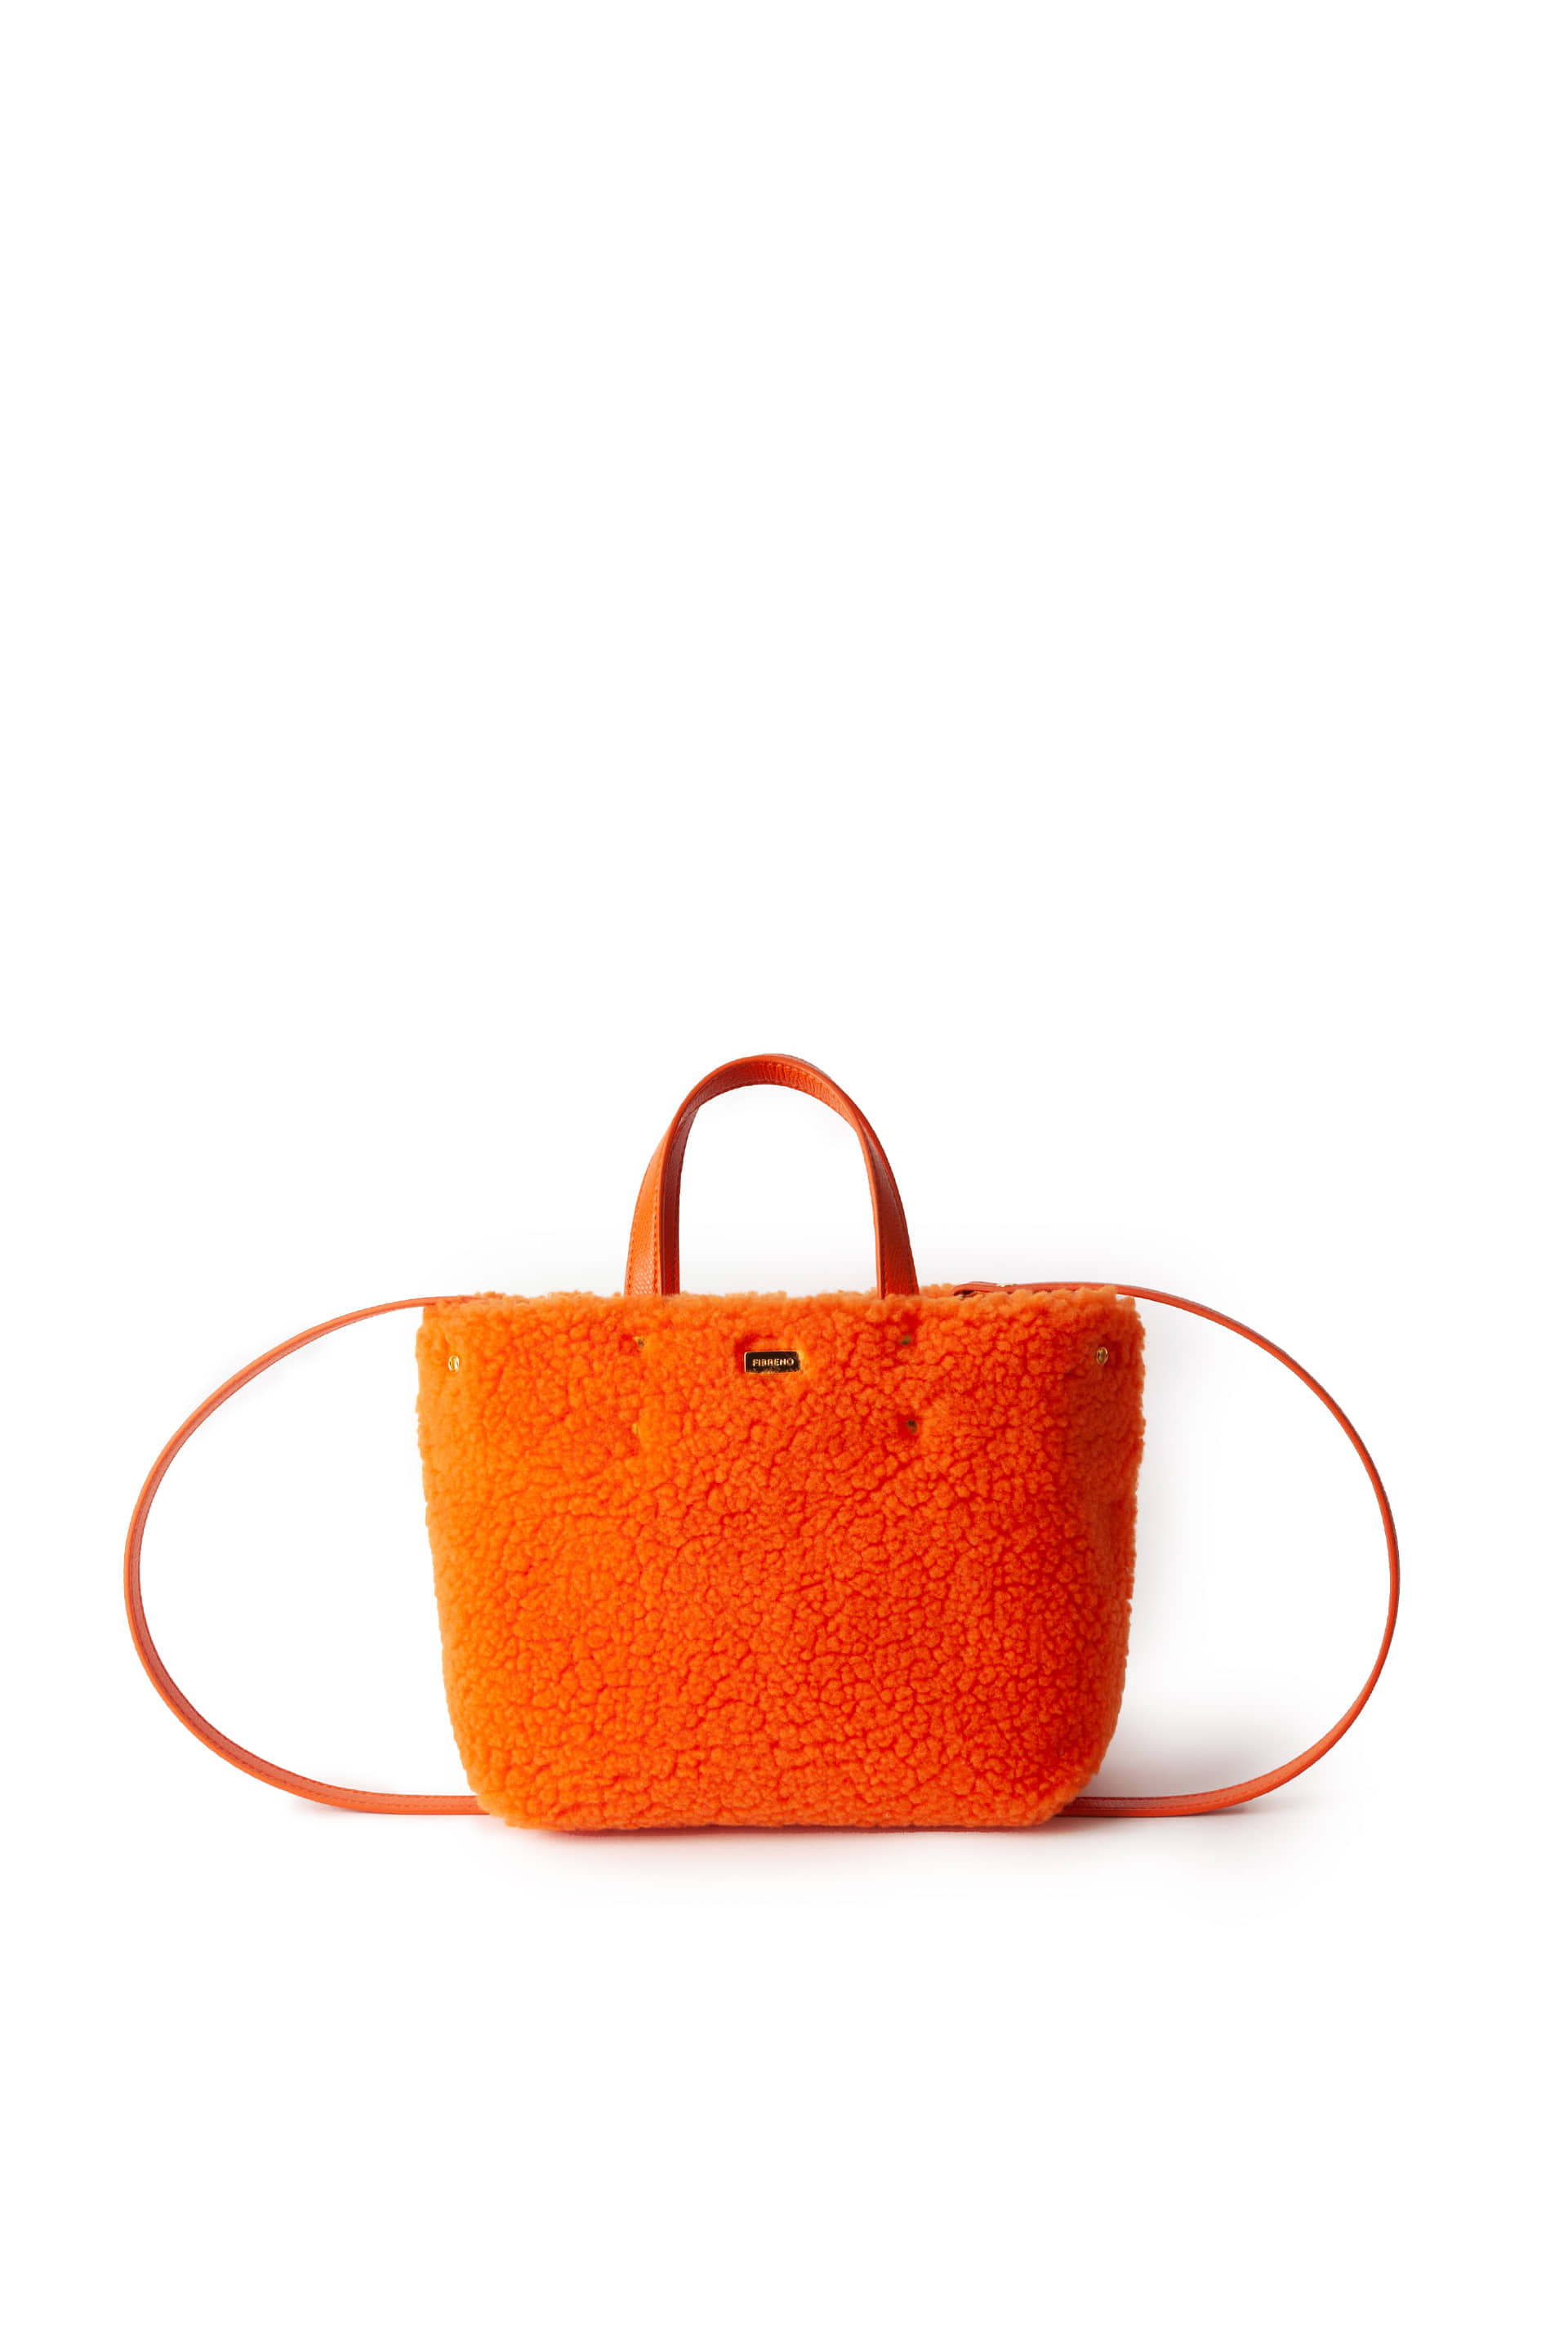 TEDDY BAG 2020 28 Henri Orange